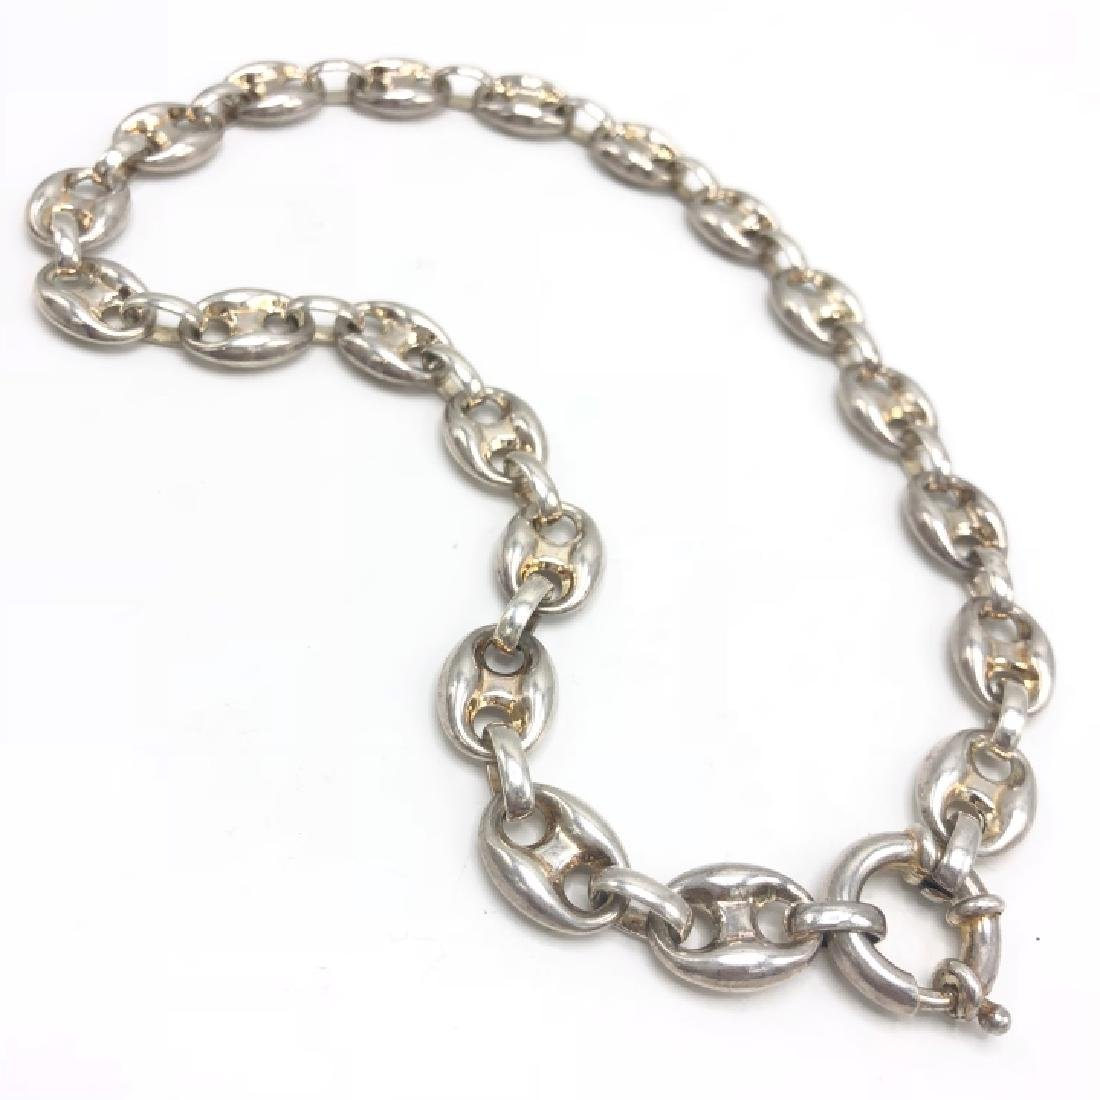 Vintage Sterling Gucci Style Marnier Link Chain